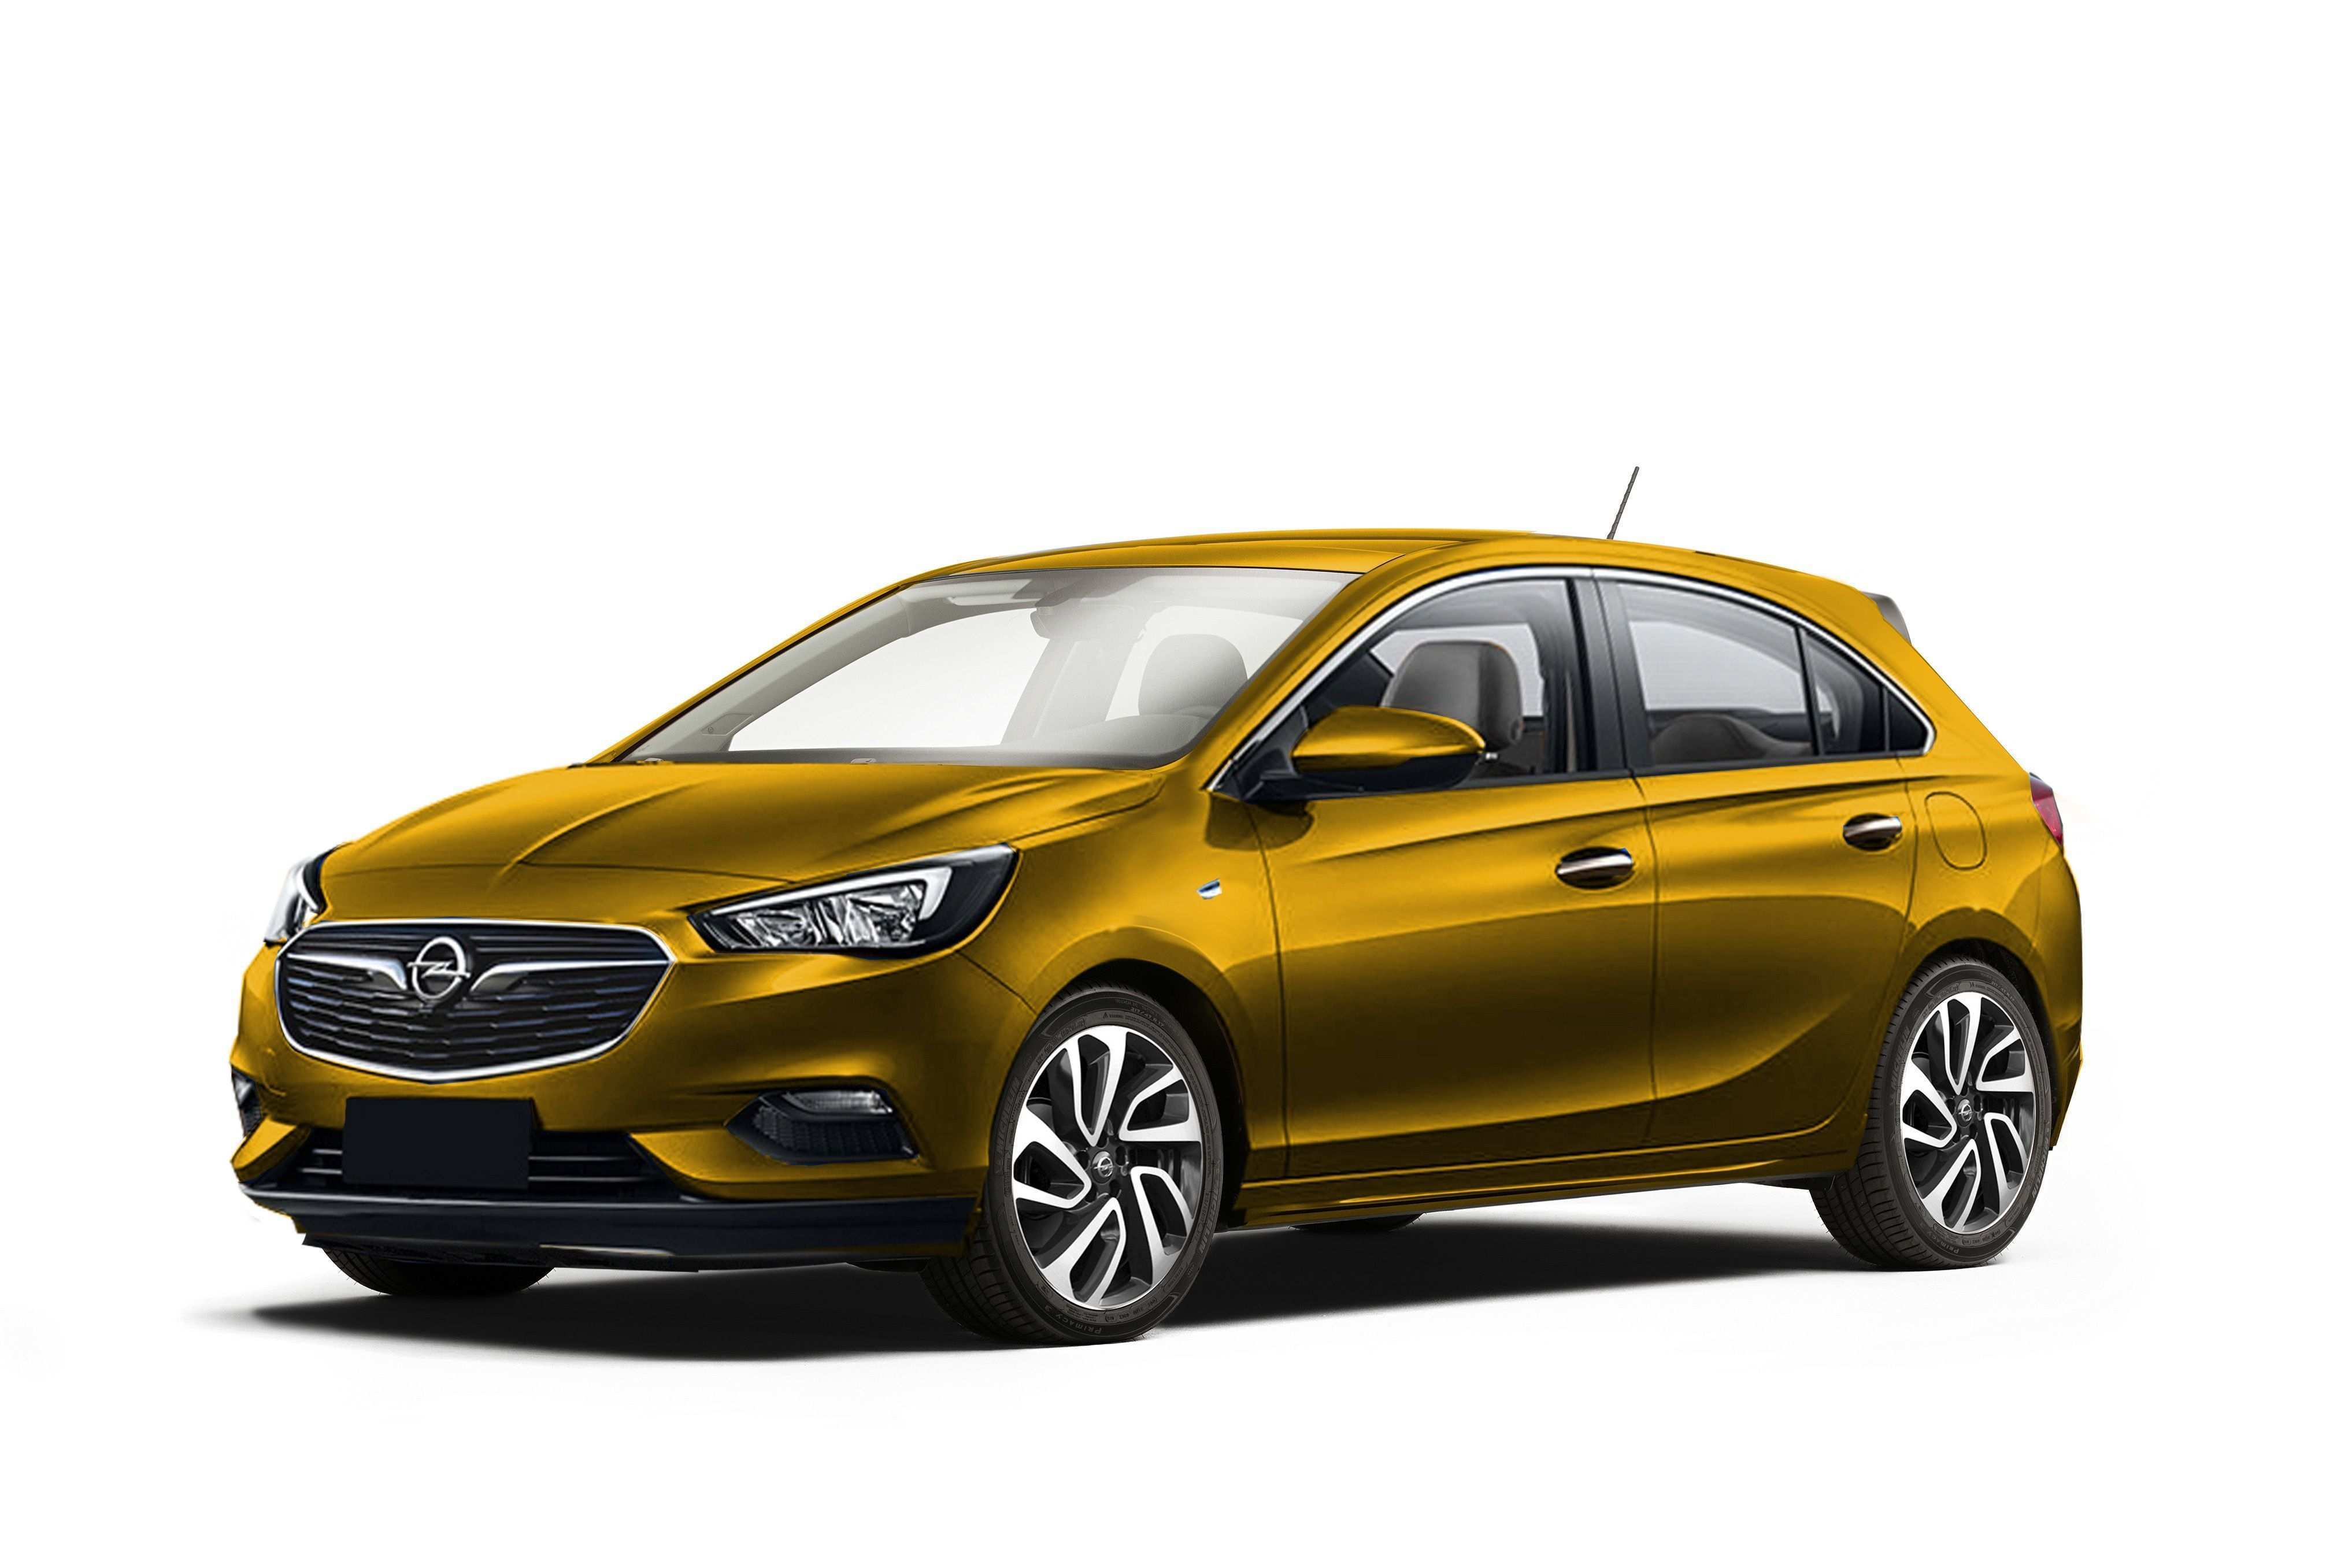 31 Gallery of Opel Corsa 2020 Rendering Redesign and Concept by Opel Corsa 2020 Rendering